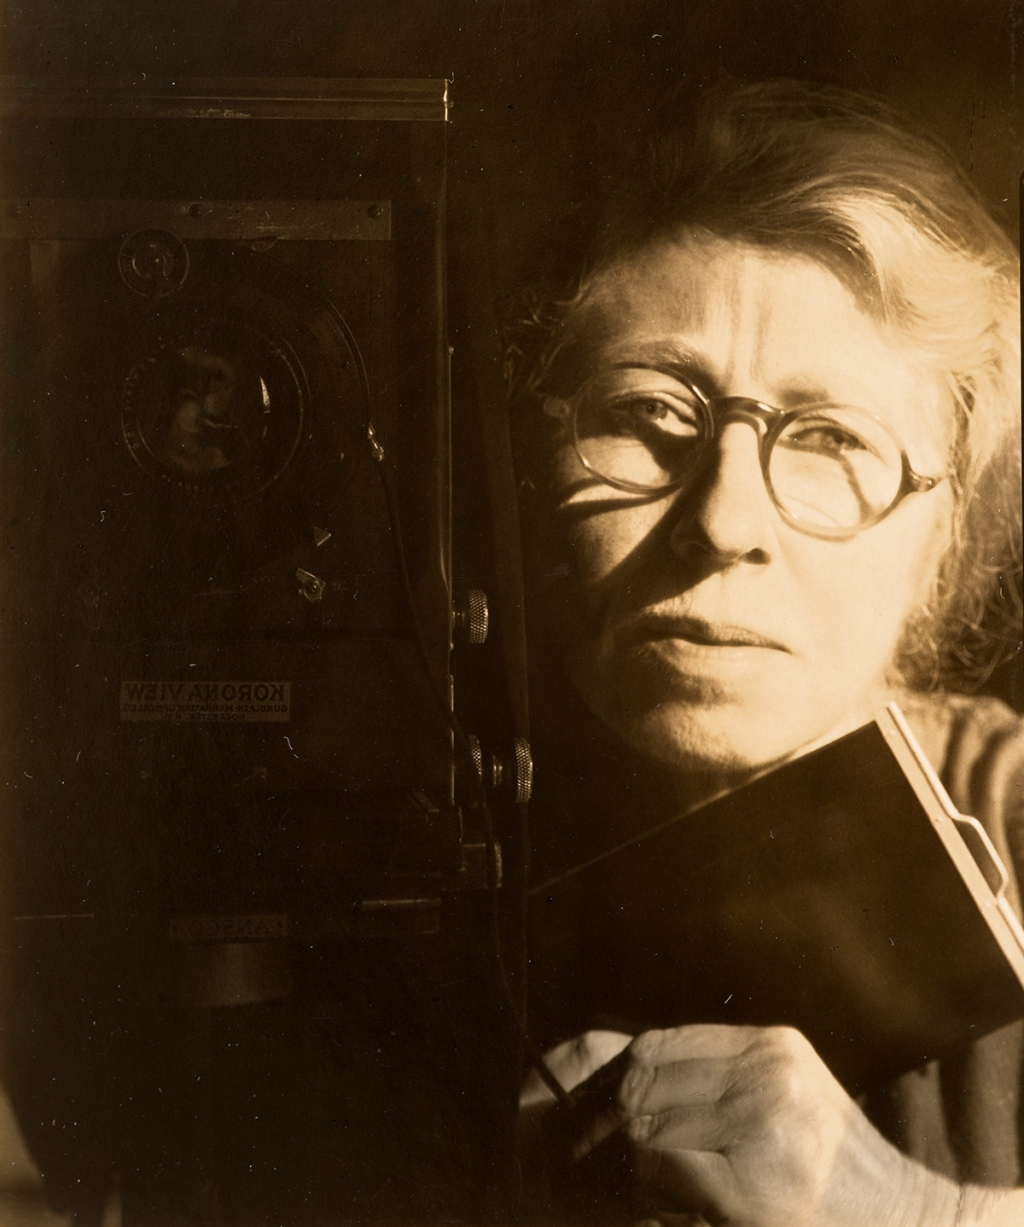 Imogen Cunningham's Rise: Why the Proto-Feminist Photographer Has Grown So Popular